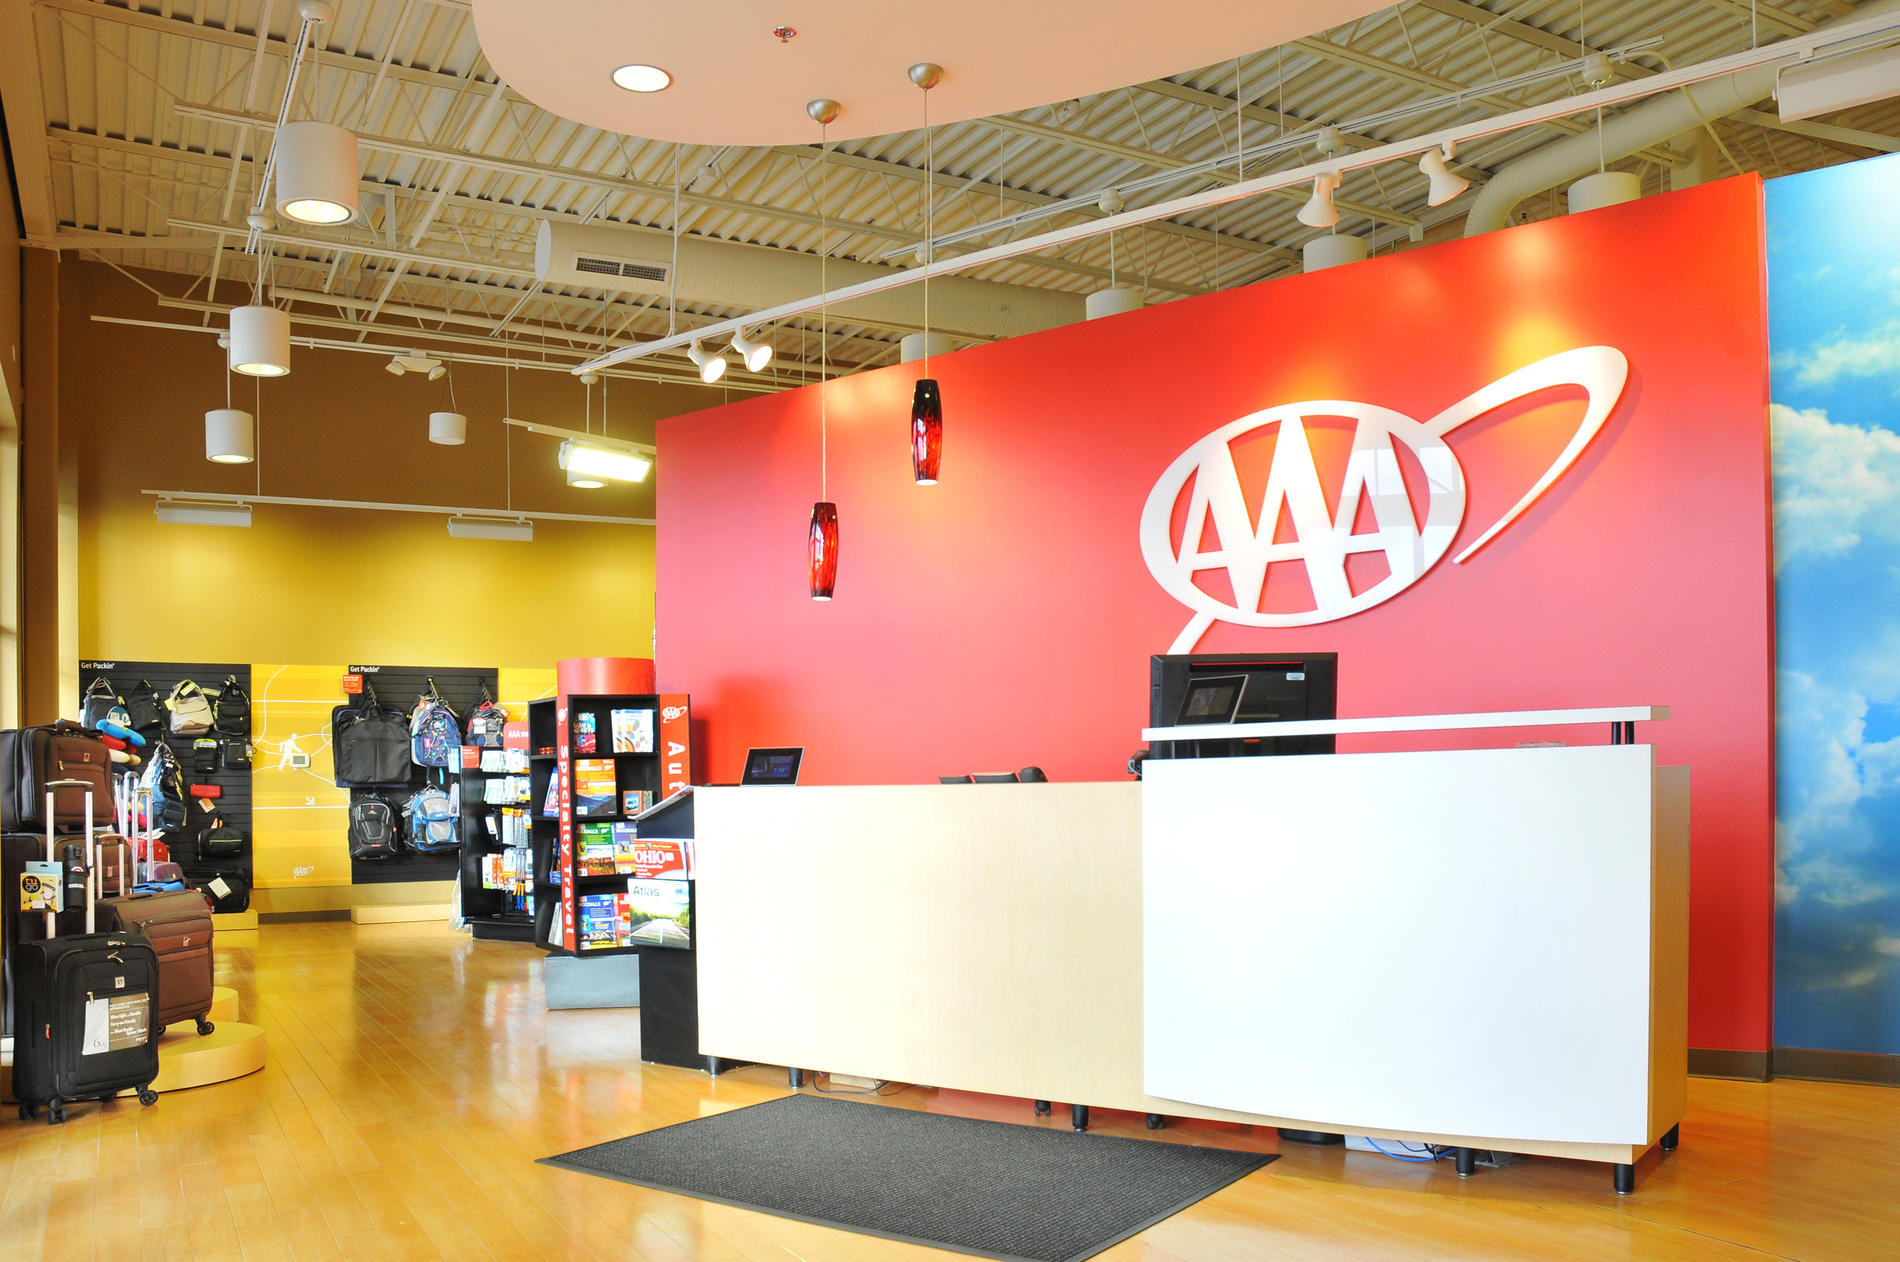 Aaa Auto Club Near Me >> Visit Your Aaa At West Chester Oh At 8210 Highland Pointe